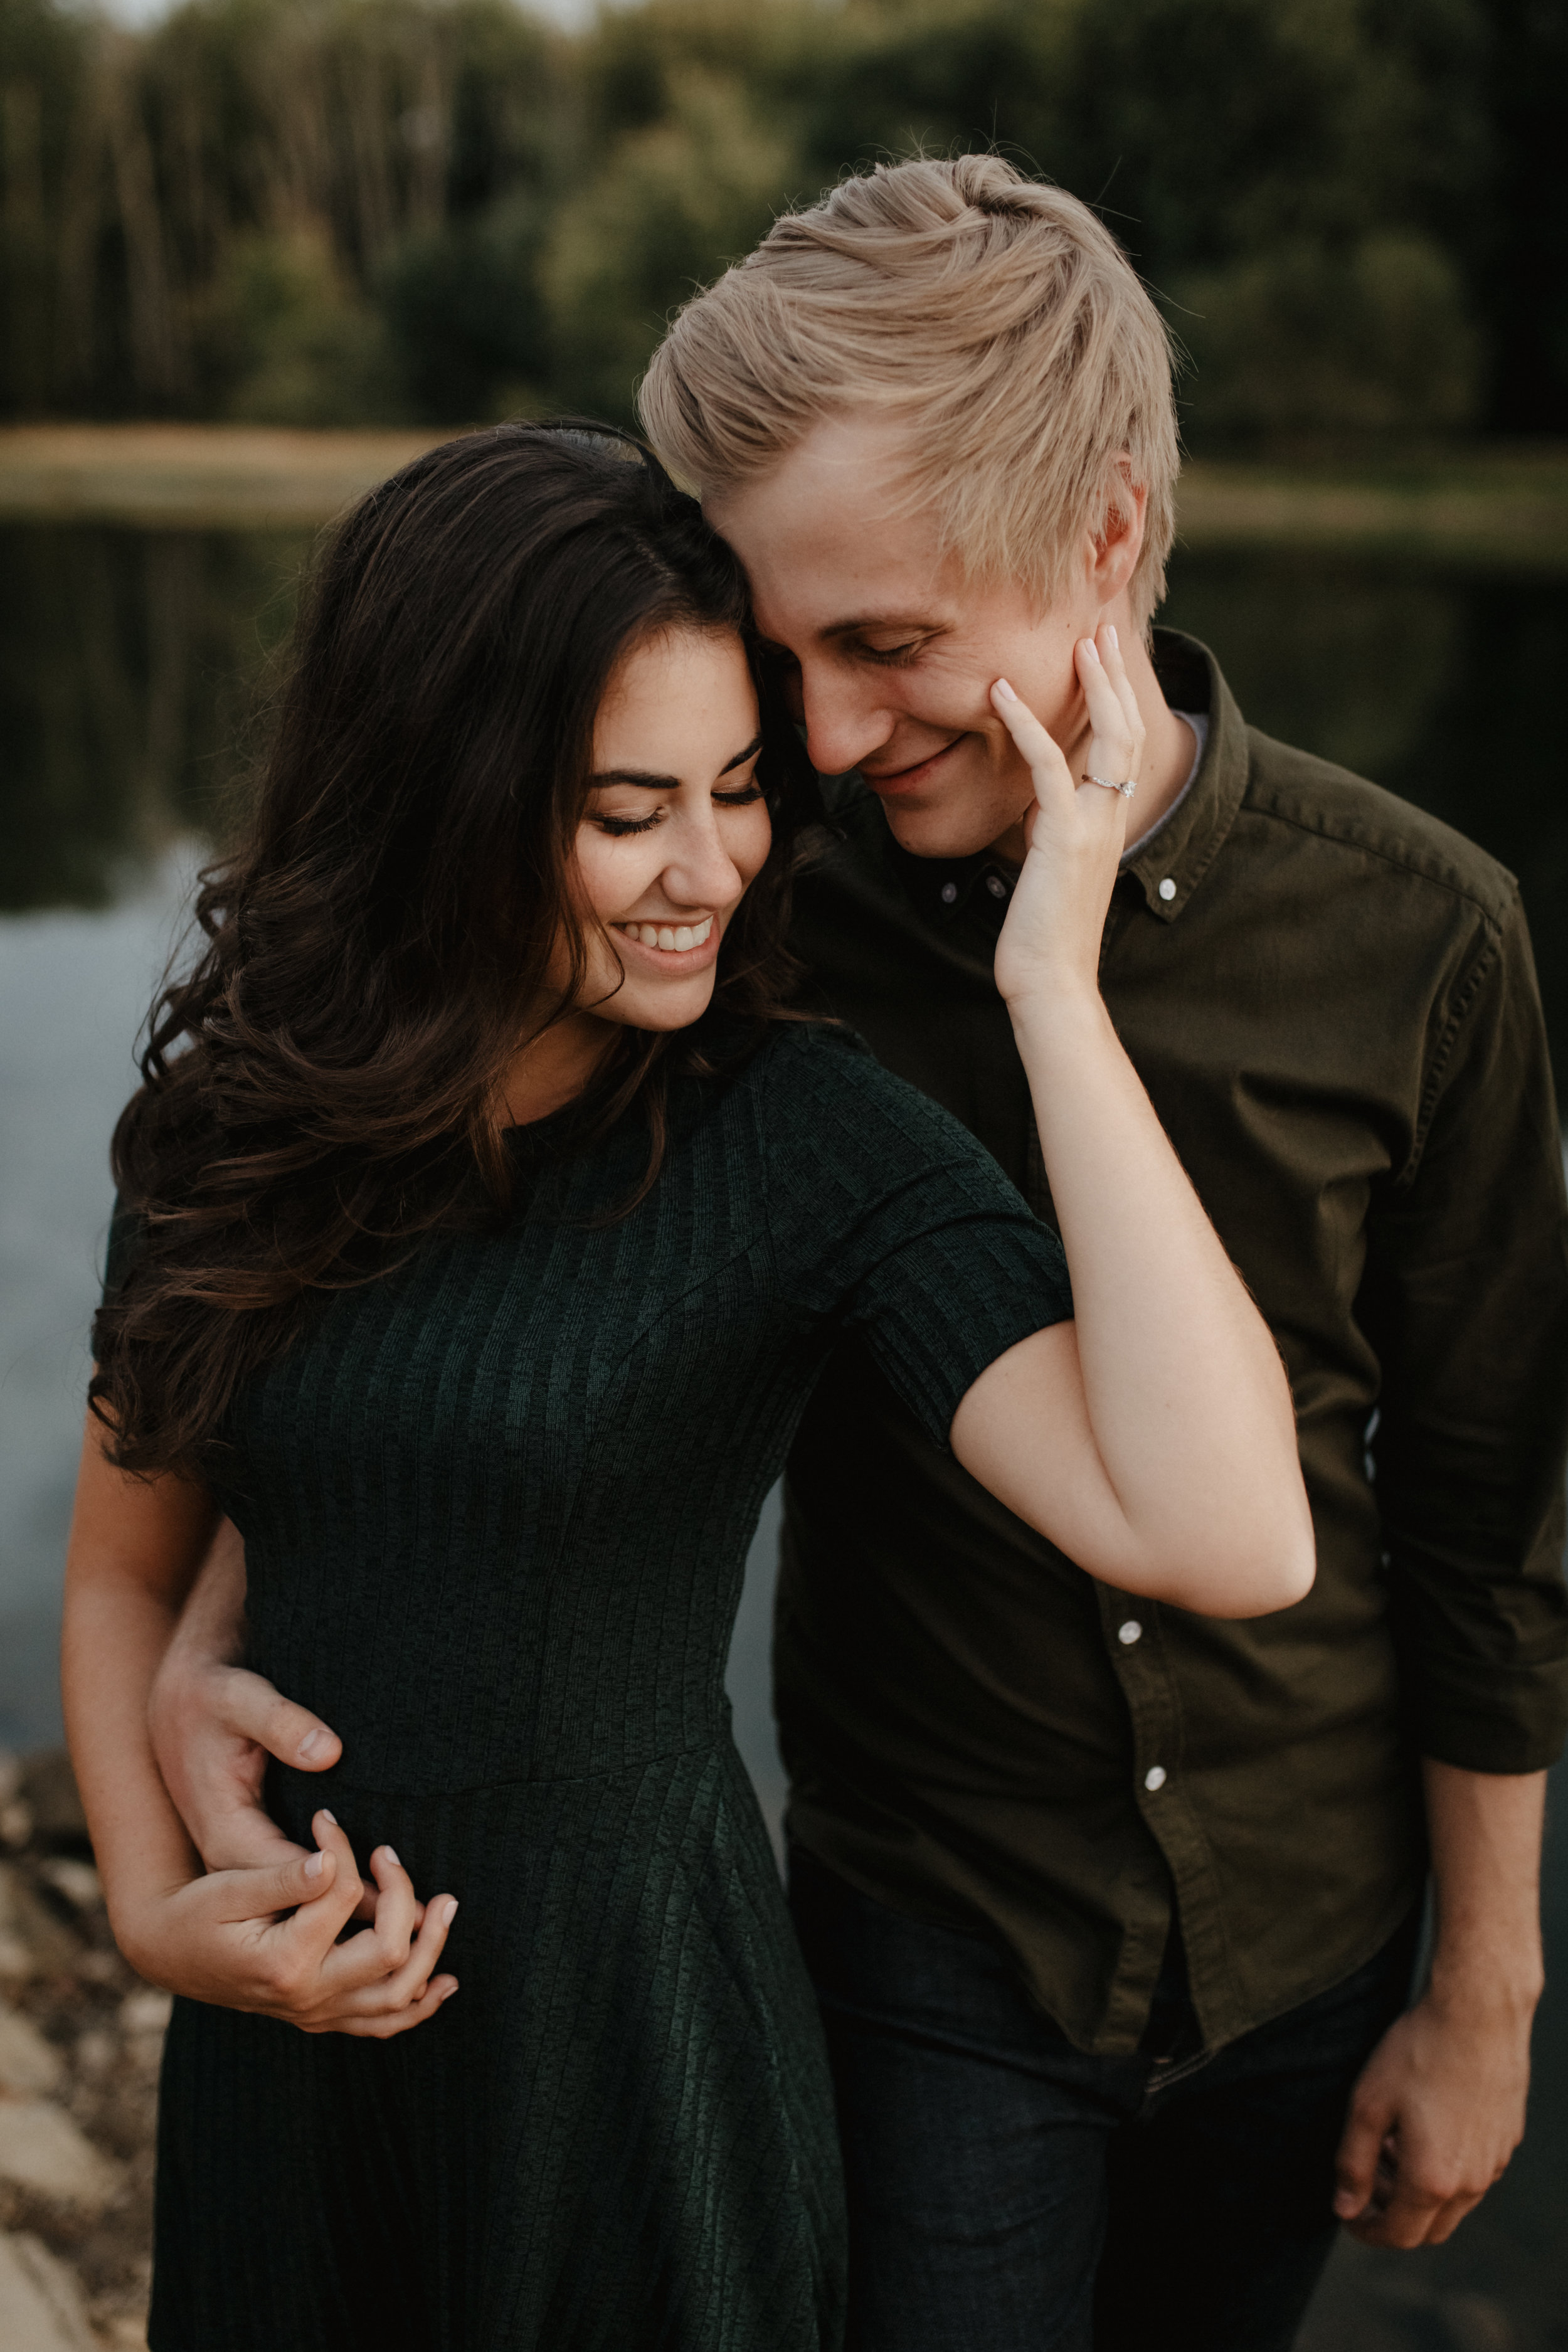 Claire-Rex-Pickar-Engagement-Photography-Collection-518.jpg